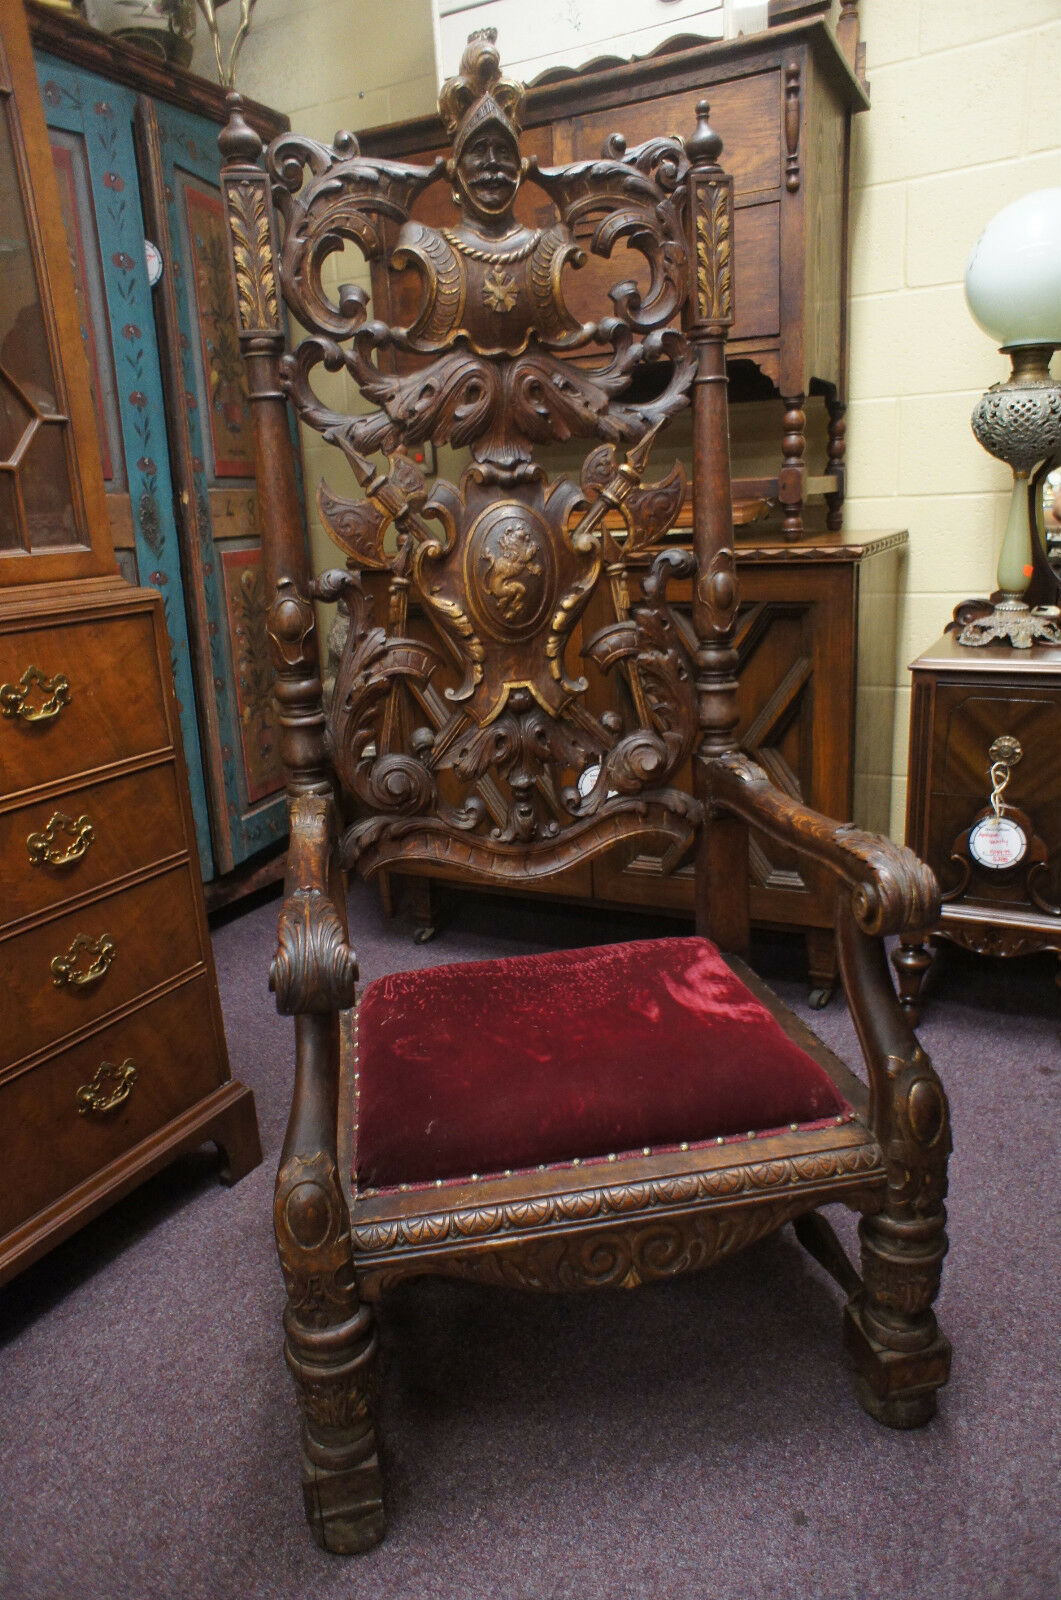 Antique Spanish Throne Chair Conquistador High Back Royal  : T2eC16dHJHwE9n8ii sRBRkTdsdjNw6057 from www.pinterest.com size 1061 x 1600 jpeg 373kB